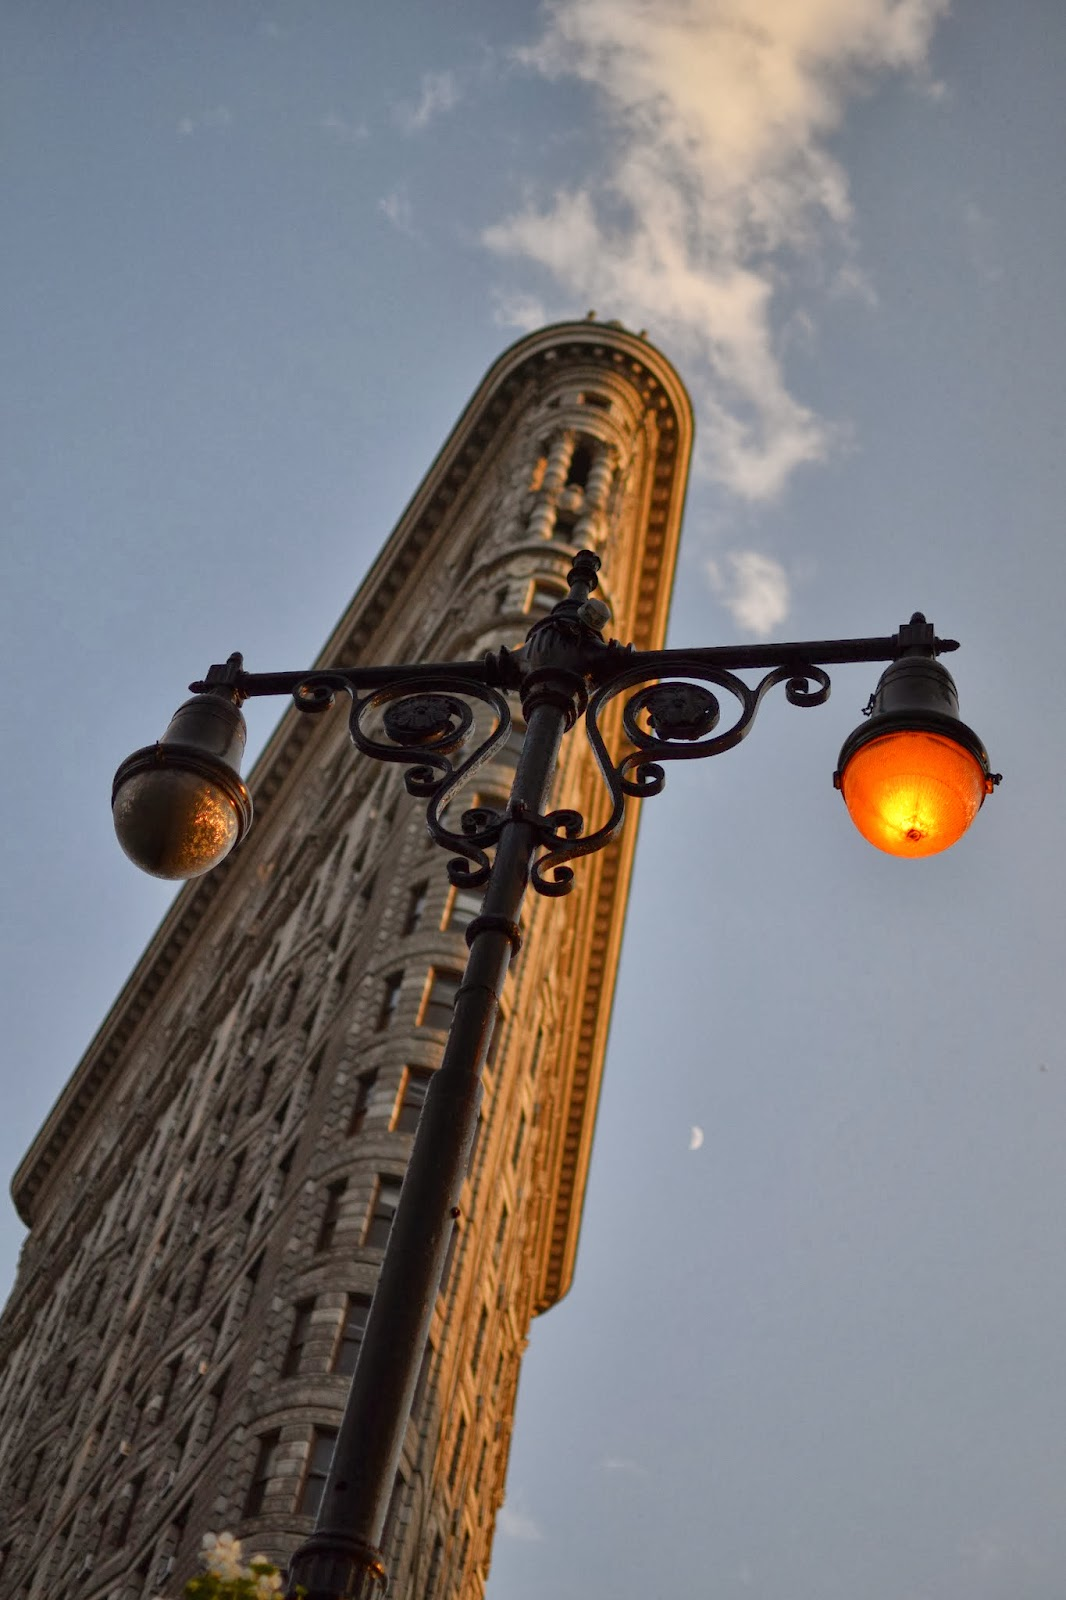 flatiron, building, district, lights, angle, NYC, New York, 10 free things to do, free things to do in NYC, travel, New York, explore, adventures, photography, usa, tourism, tourists,